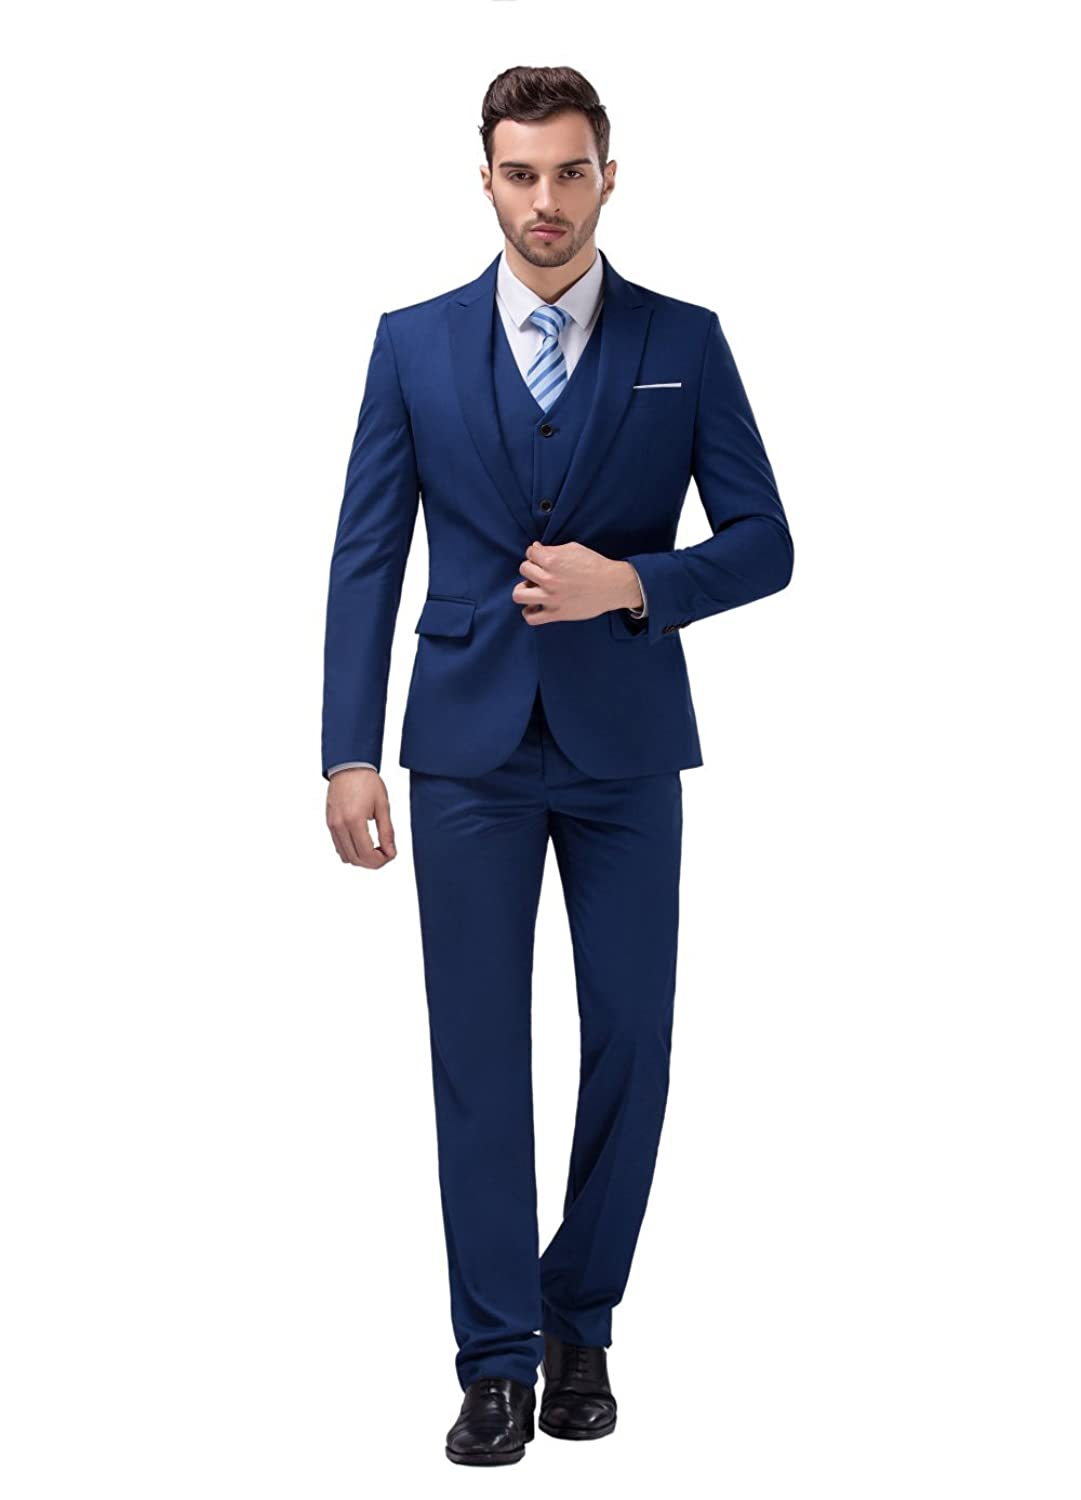 Silversilk Clothing is the premier brand of mens dress clothing featuring mens fashion walking suits. Michael Irvin the football player wanted to have a mens clothing manufacturer make mens dress clothing like walking suits that had the style,fabric and flair that suited him and Silversilk was born.